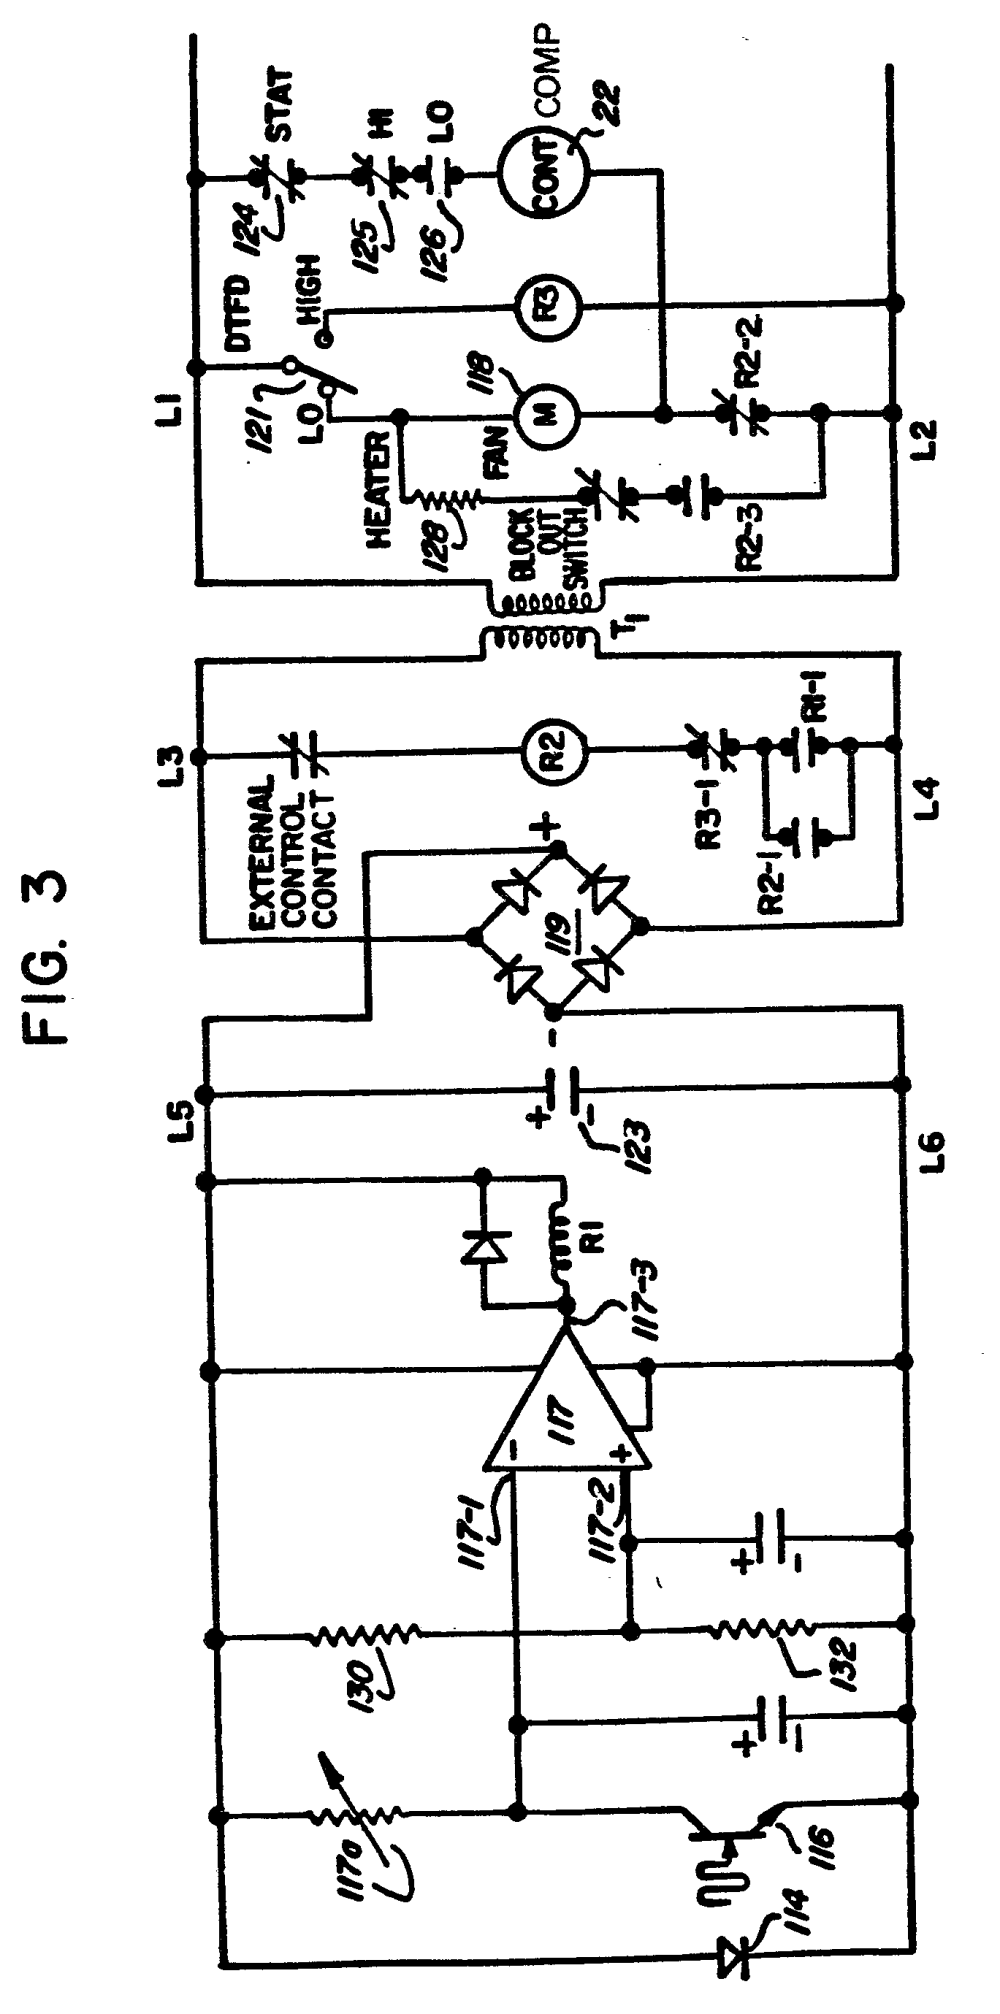 medium resolution of imgf0002 patent ep0066862a1 demand defrost system google patents defrost termination fan delay switch wiring diagram at